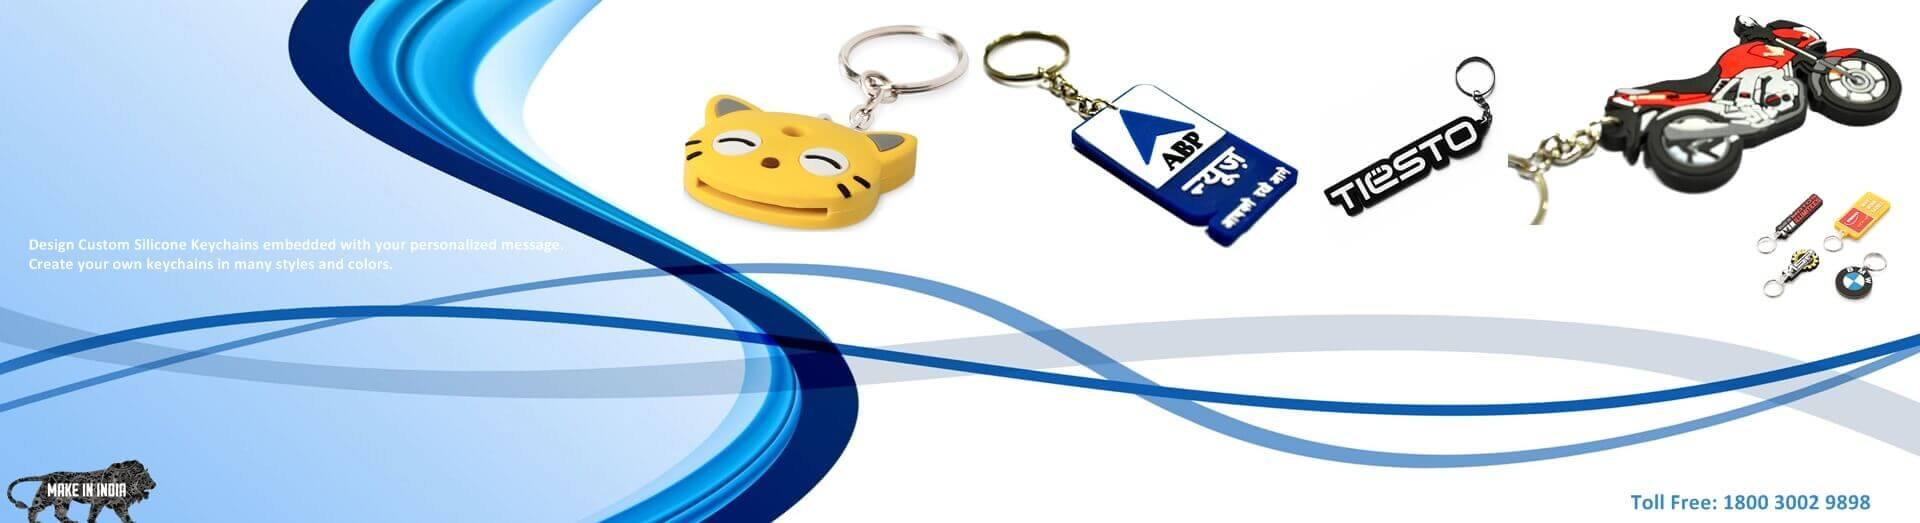 Rubber Keychain Manufacturer in Ahmedabad,Keychain in Ahmedabad,Keychain Manufacturer in Banglore,Promotional Keychain in Ahmedabad,Customized Keychain in Banglore,Keychain Wholesaler in Ahmedabad